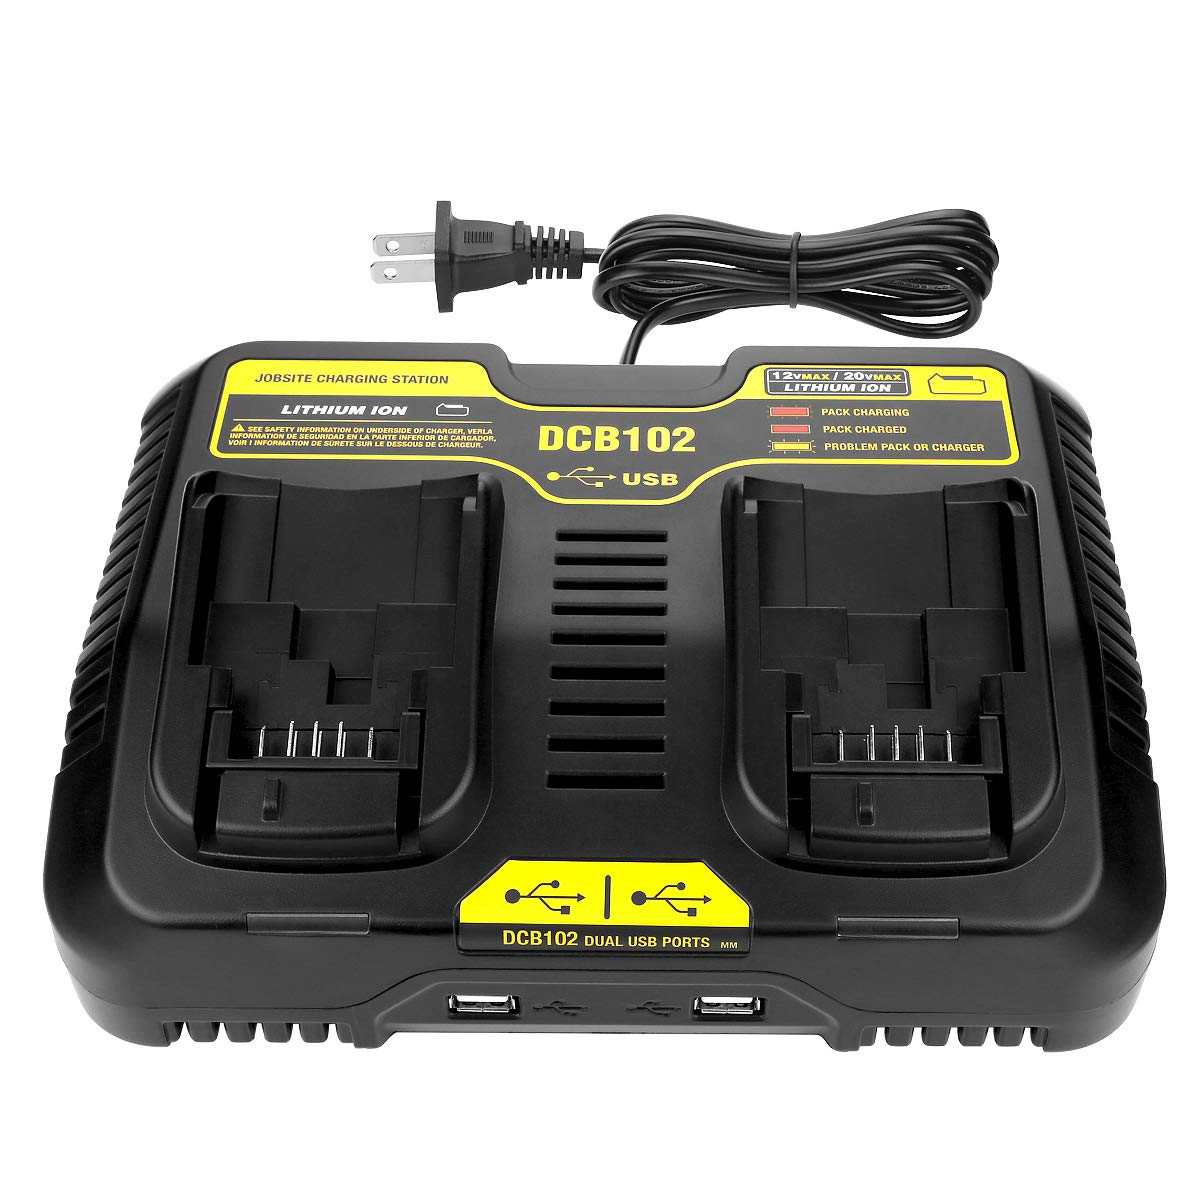 Energup DCB102BP Replacement Charger for DEWALT 12-Volt MAX/20-Volt MAX Jobsite Charging Station DCB102 DCB102BP Dewalt Lithium Battery DCB205-2 DCB204-2 DCB127-2